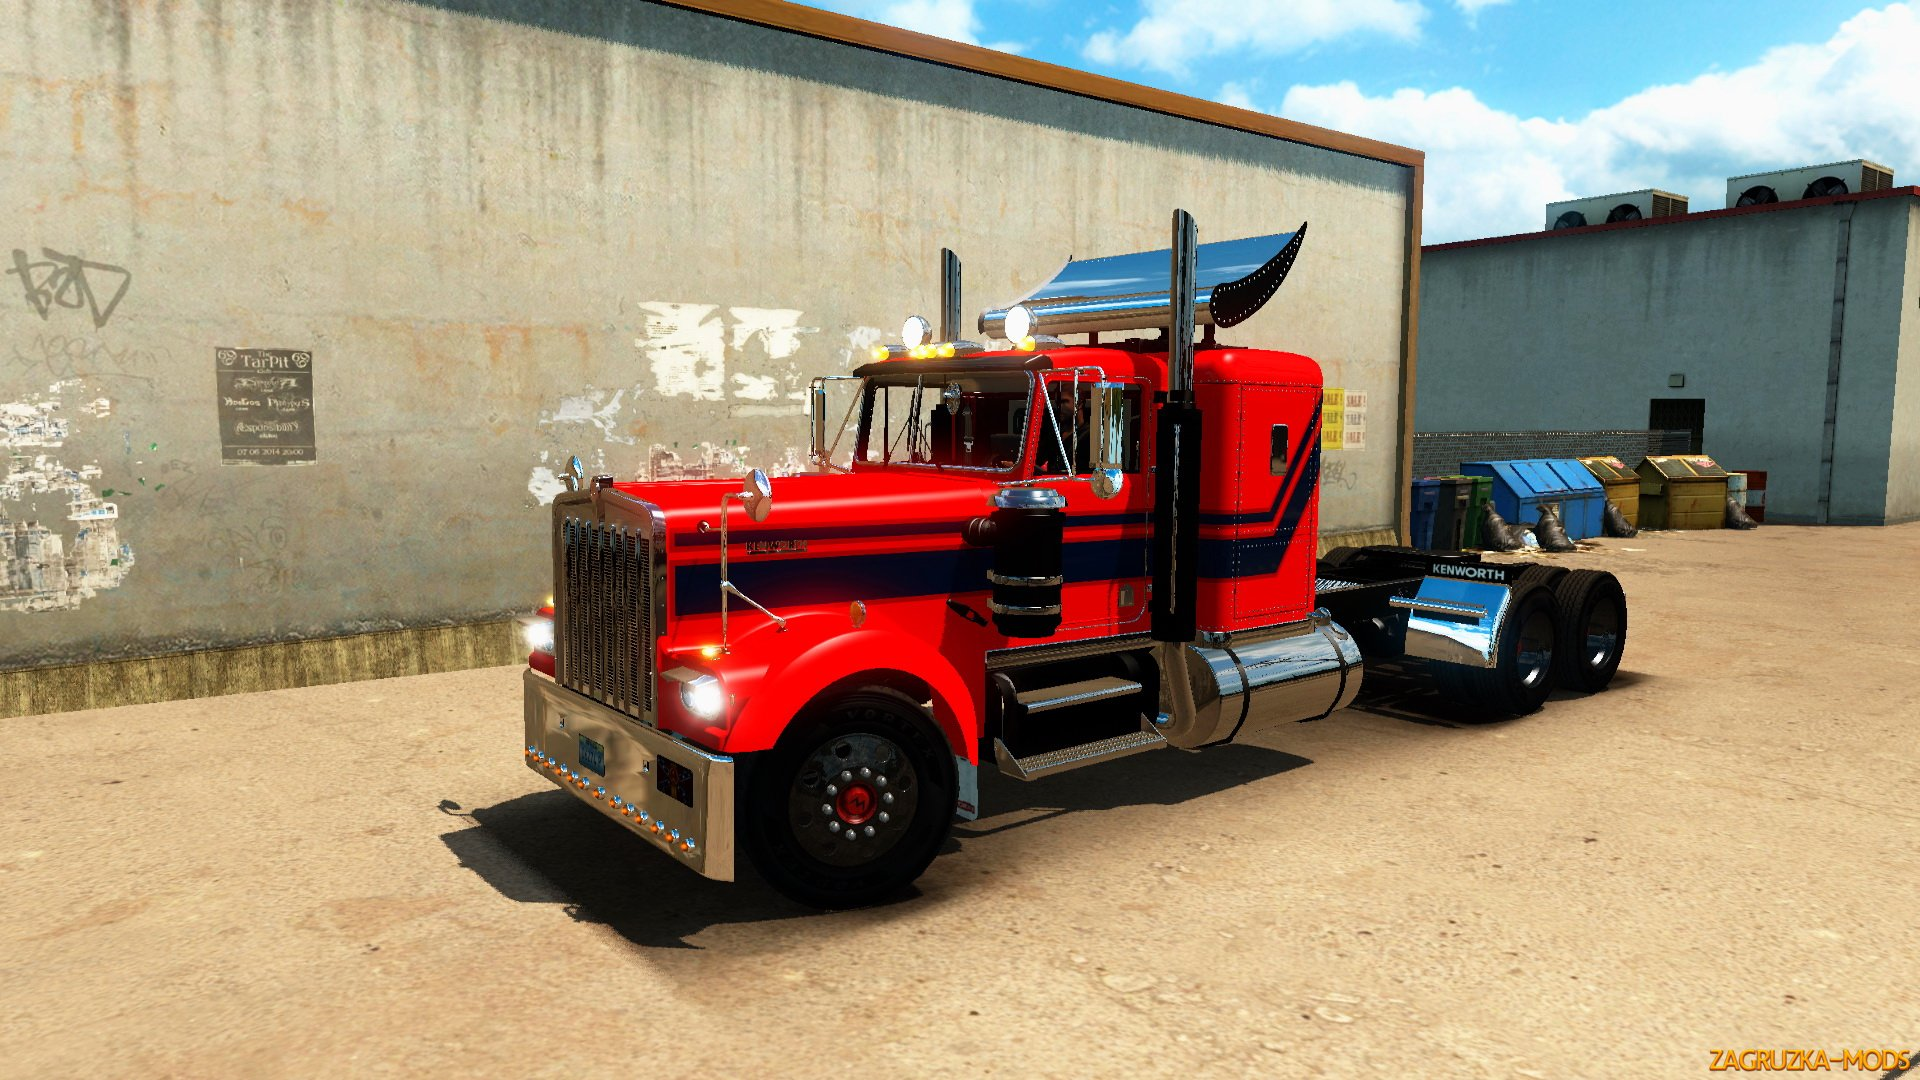 Kenworth W900A 1974 + Interior v4.0 (1.35.x) for ATS